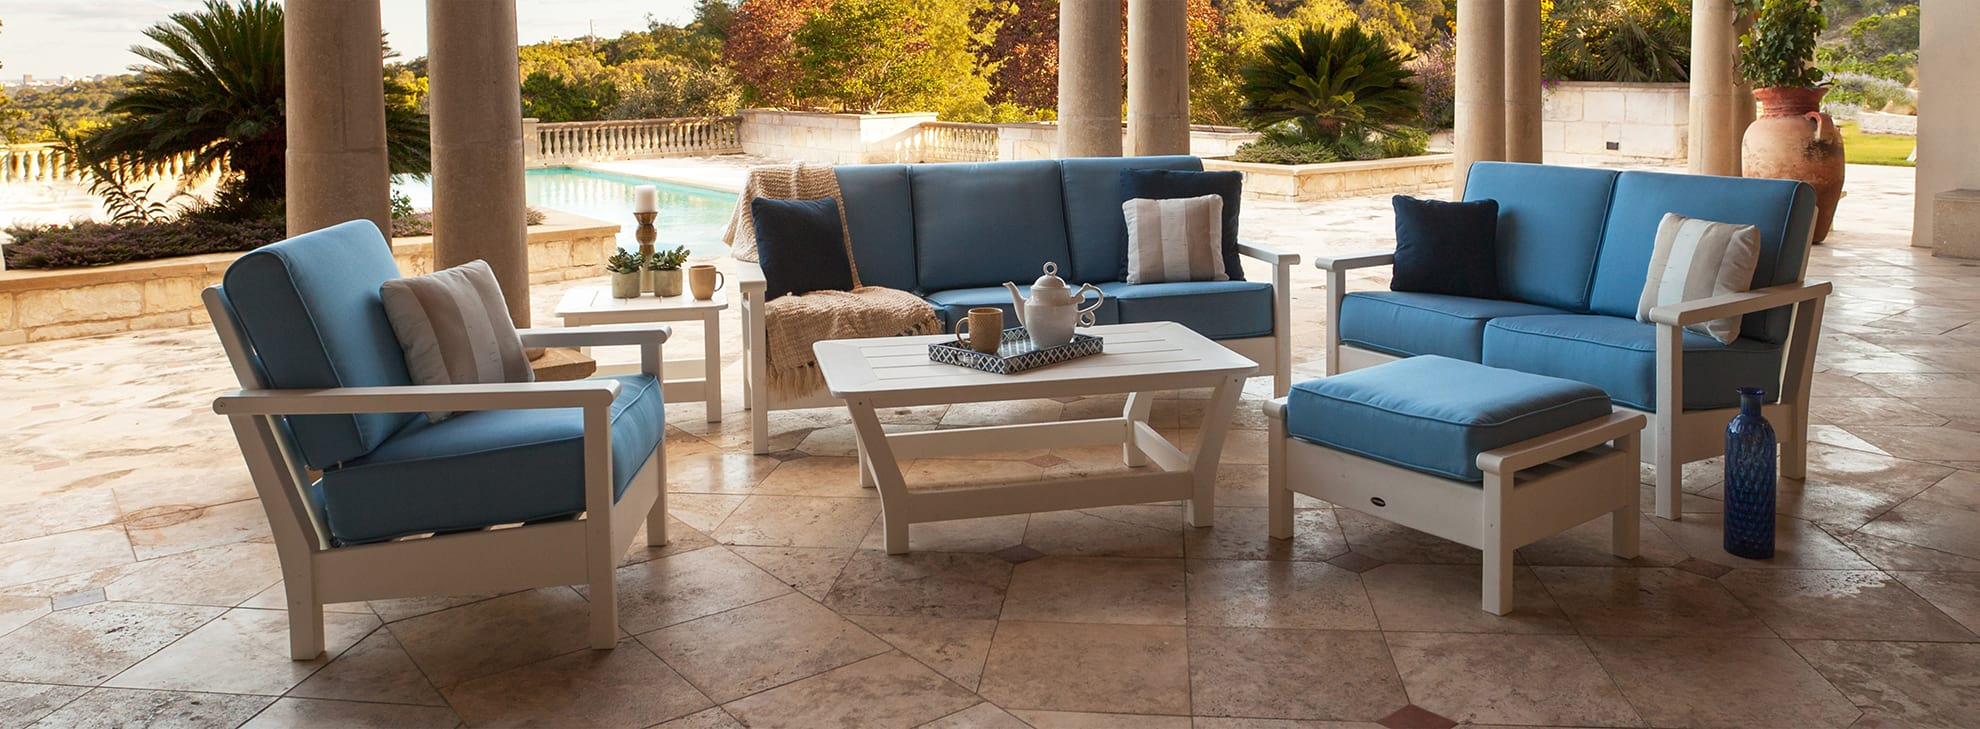 View of blue outdoor furniture on a patio.